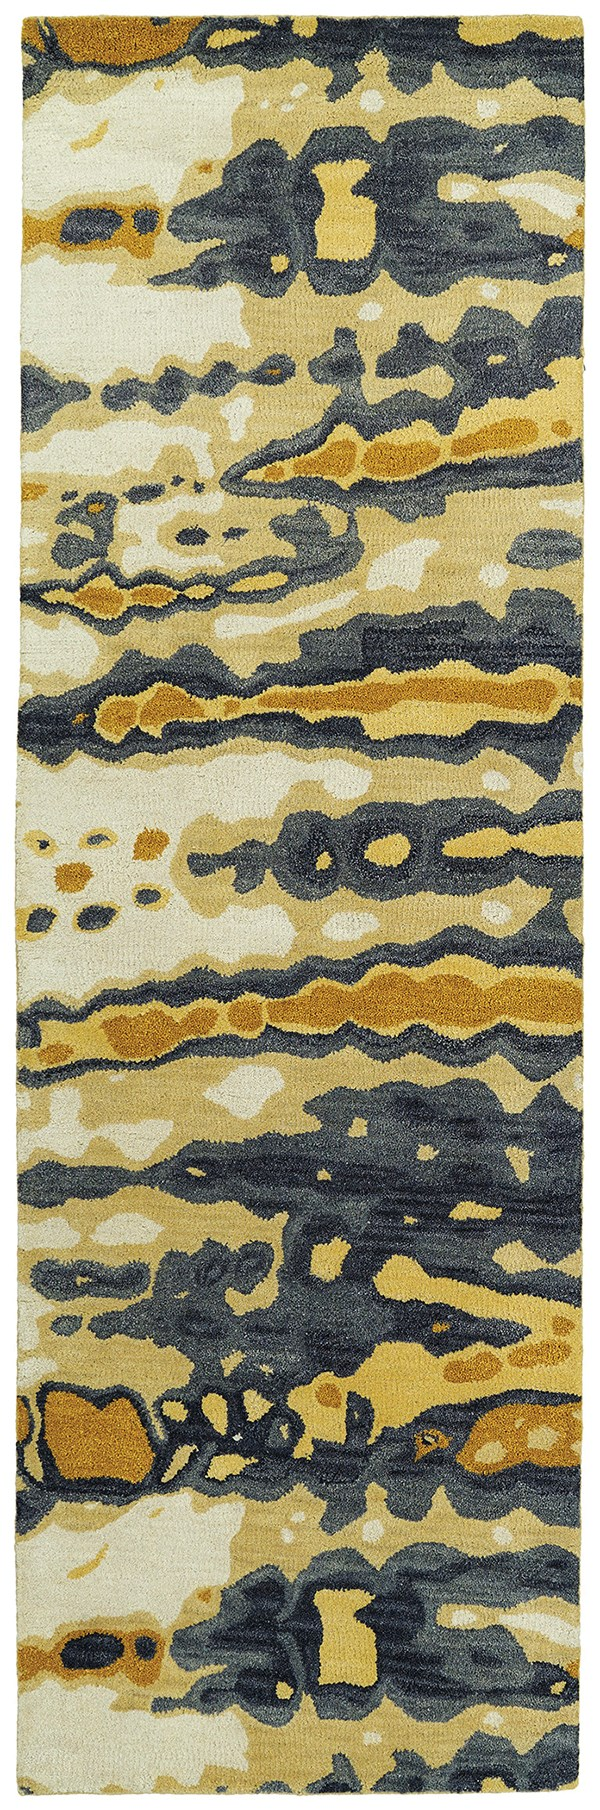 Gold, Charcoal, Beige (05) Contemporary / Modern Area Rug